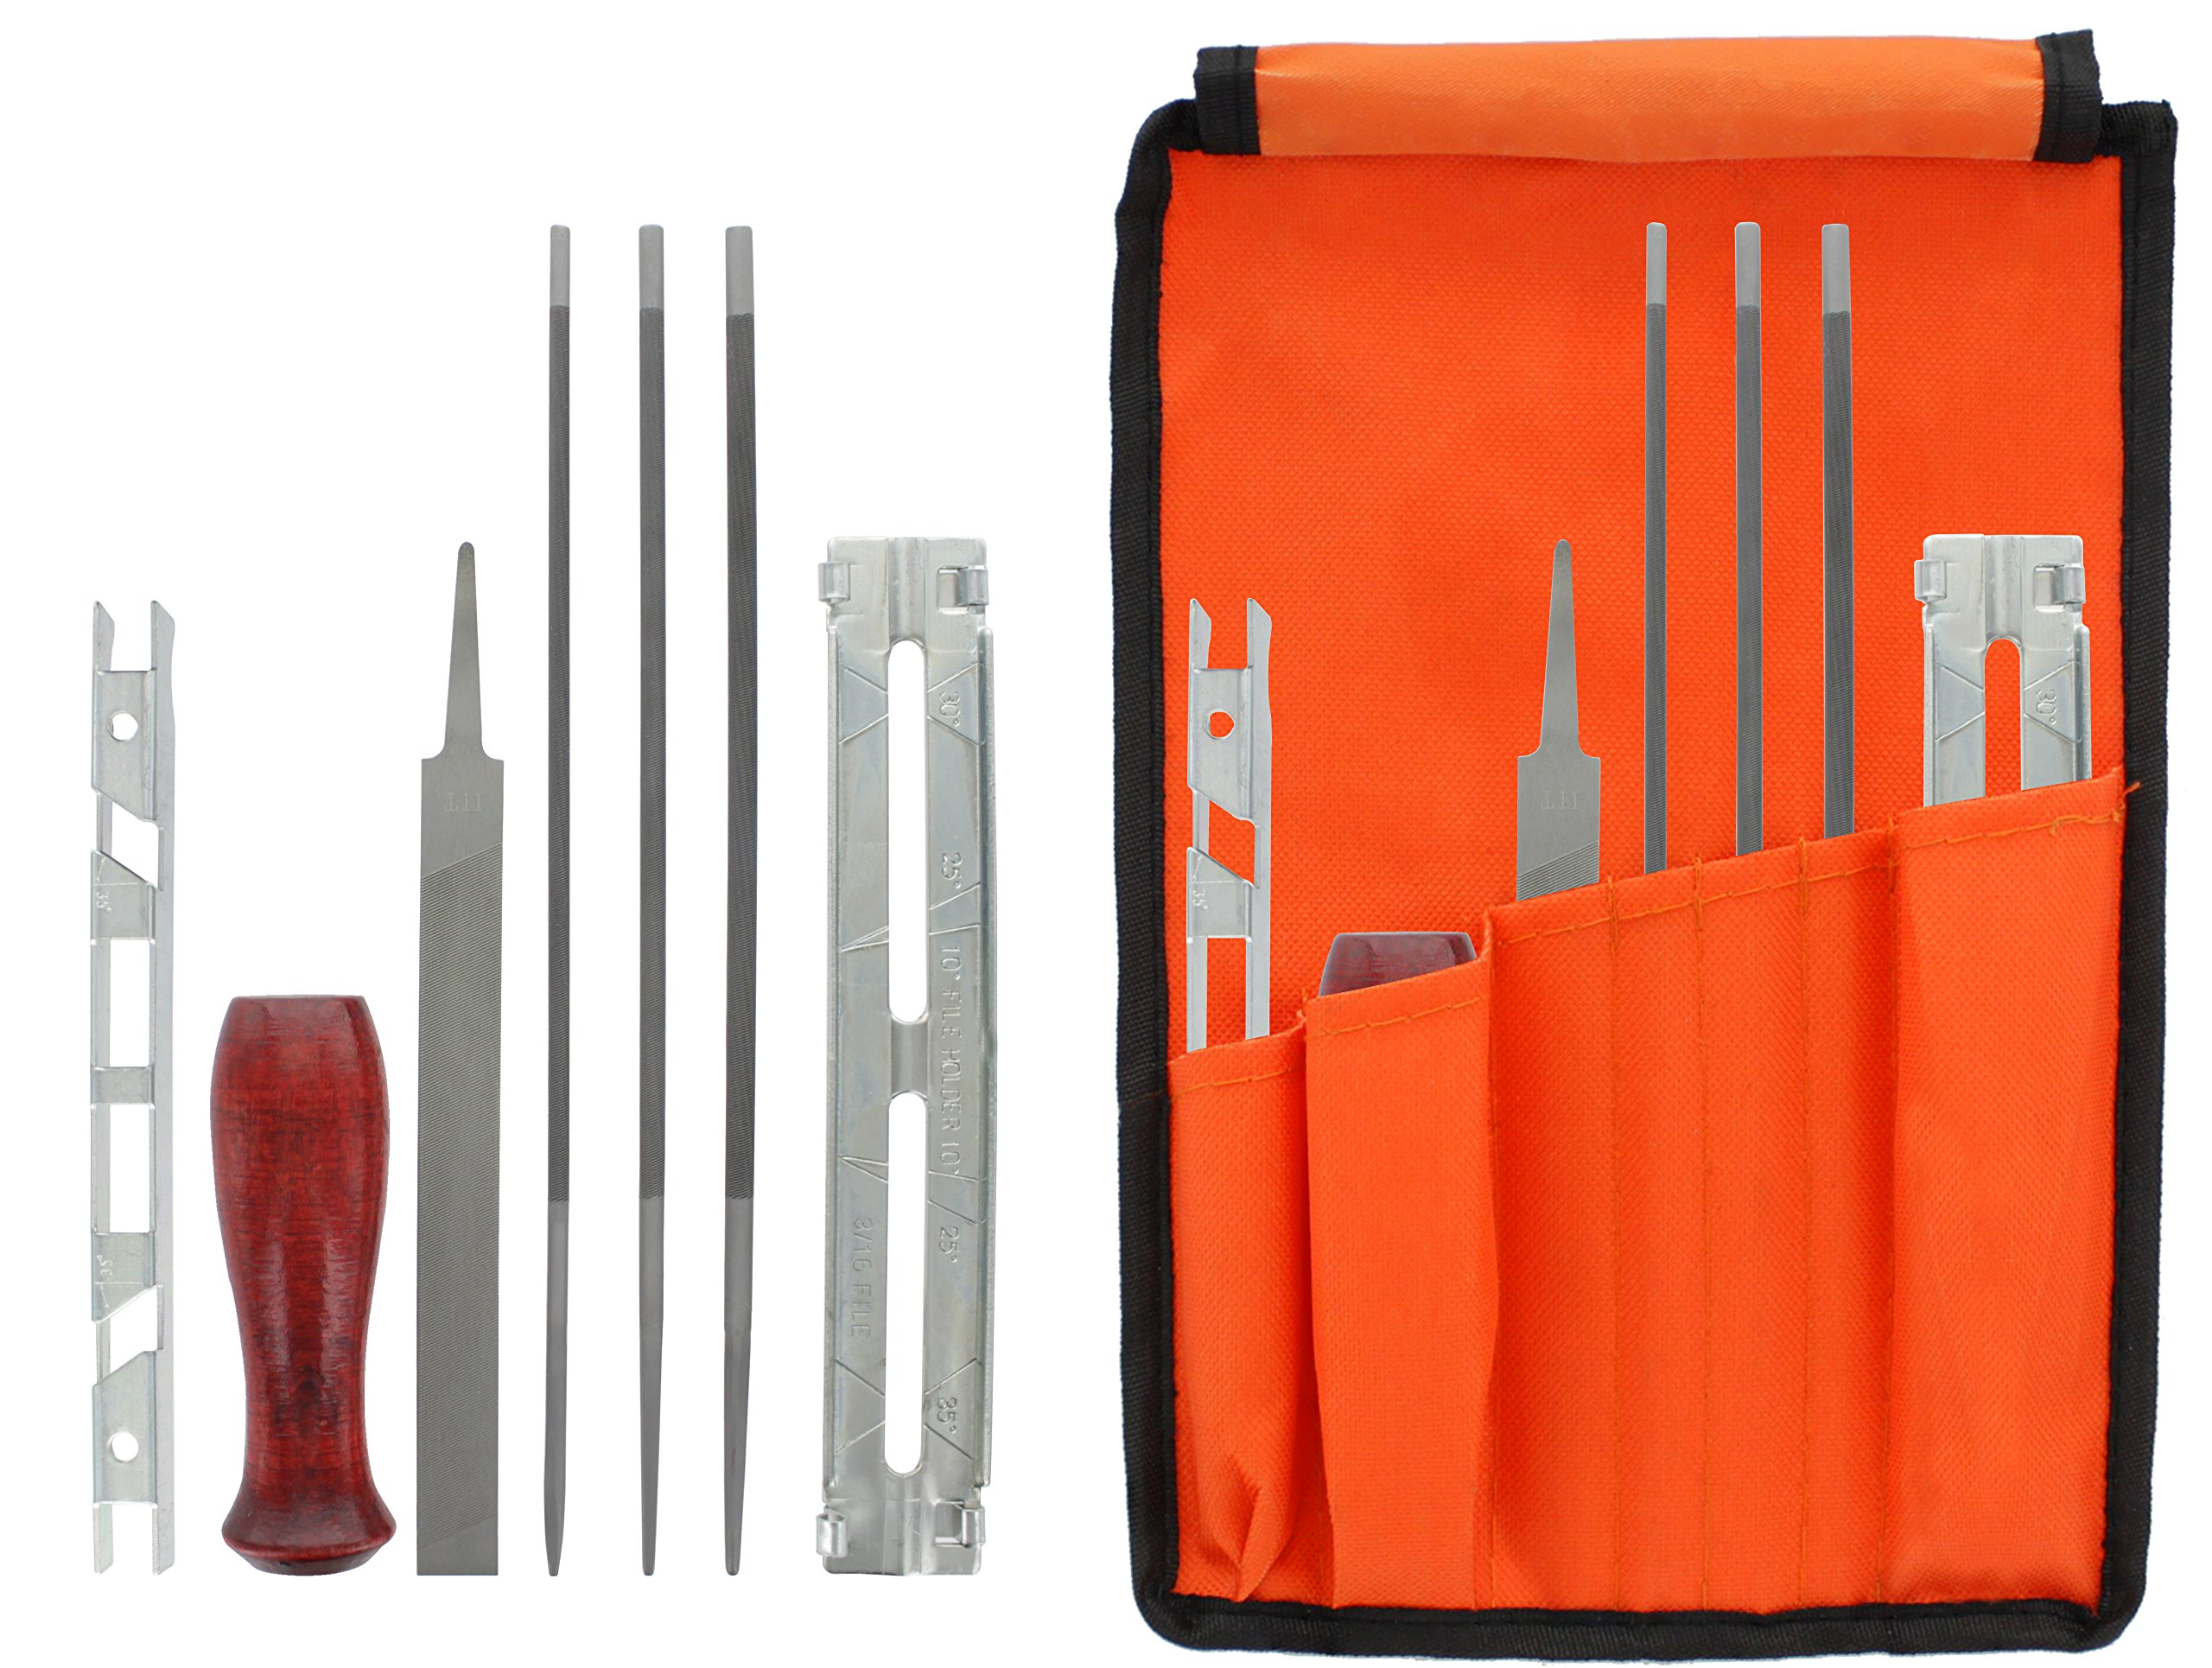 Drixet Chainsaw Sharpening & Filing Kit – Includes: 5/32'', 3/16'' & 7/32 Inch Round Files, Flat File, Depth Gauge, Filing Guide, Handle, Tool Pouch, Combo 8-Piece Pack with Instructions